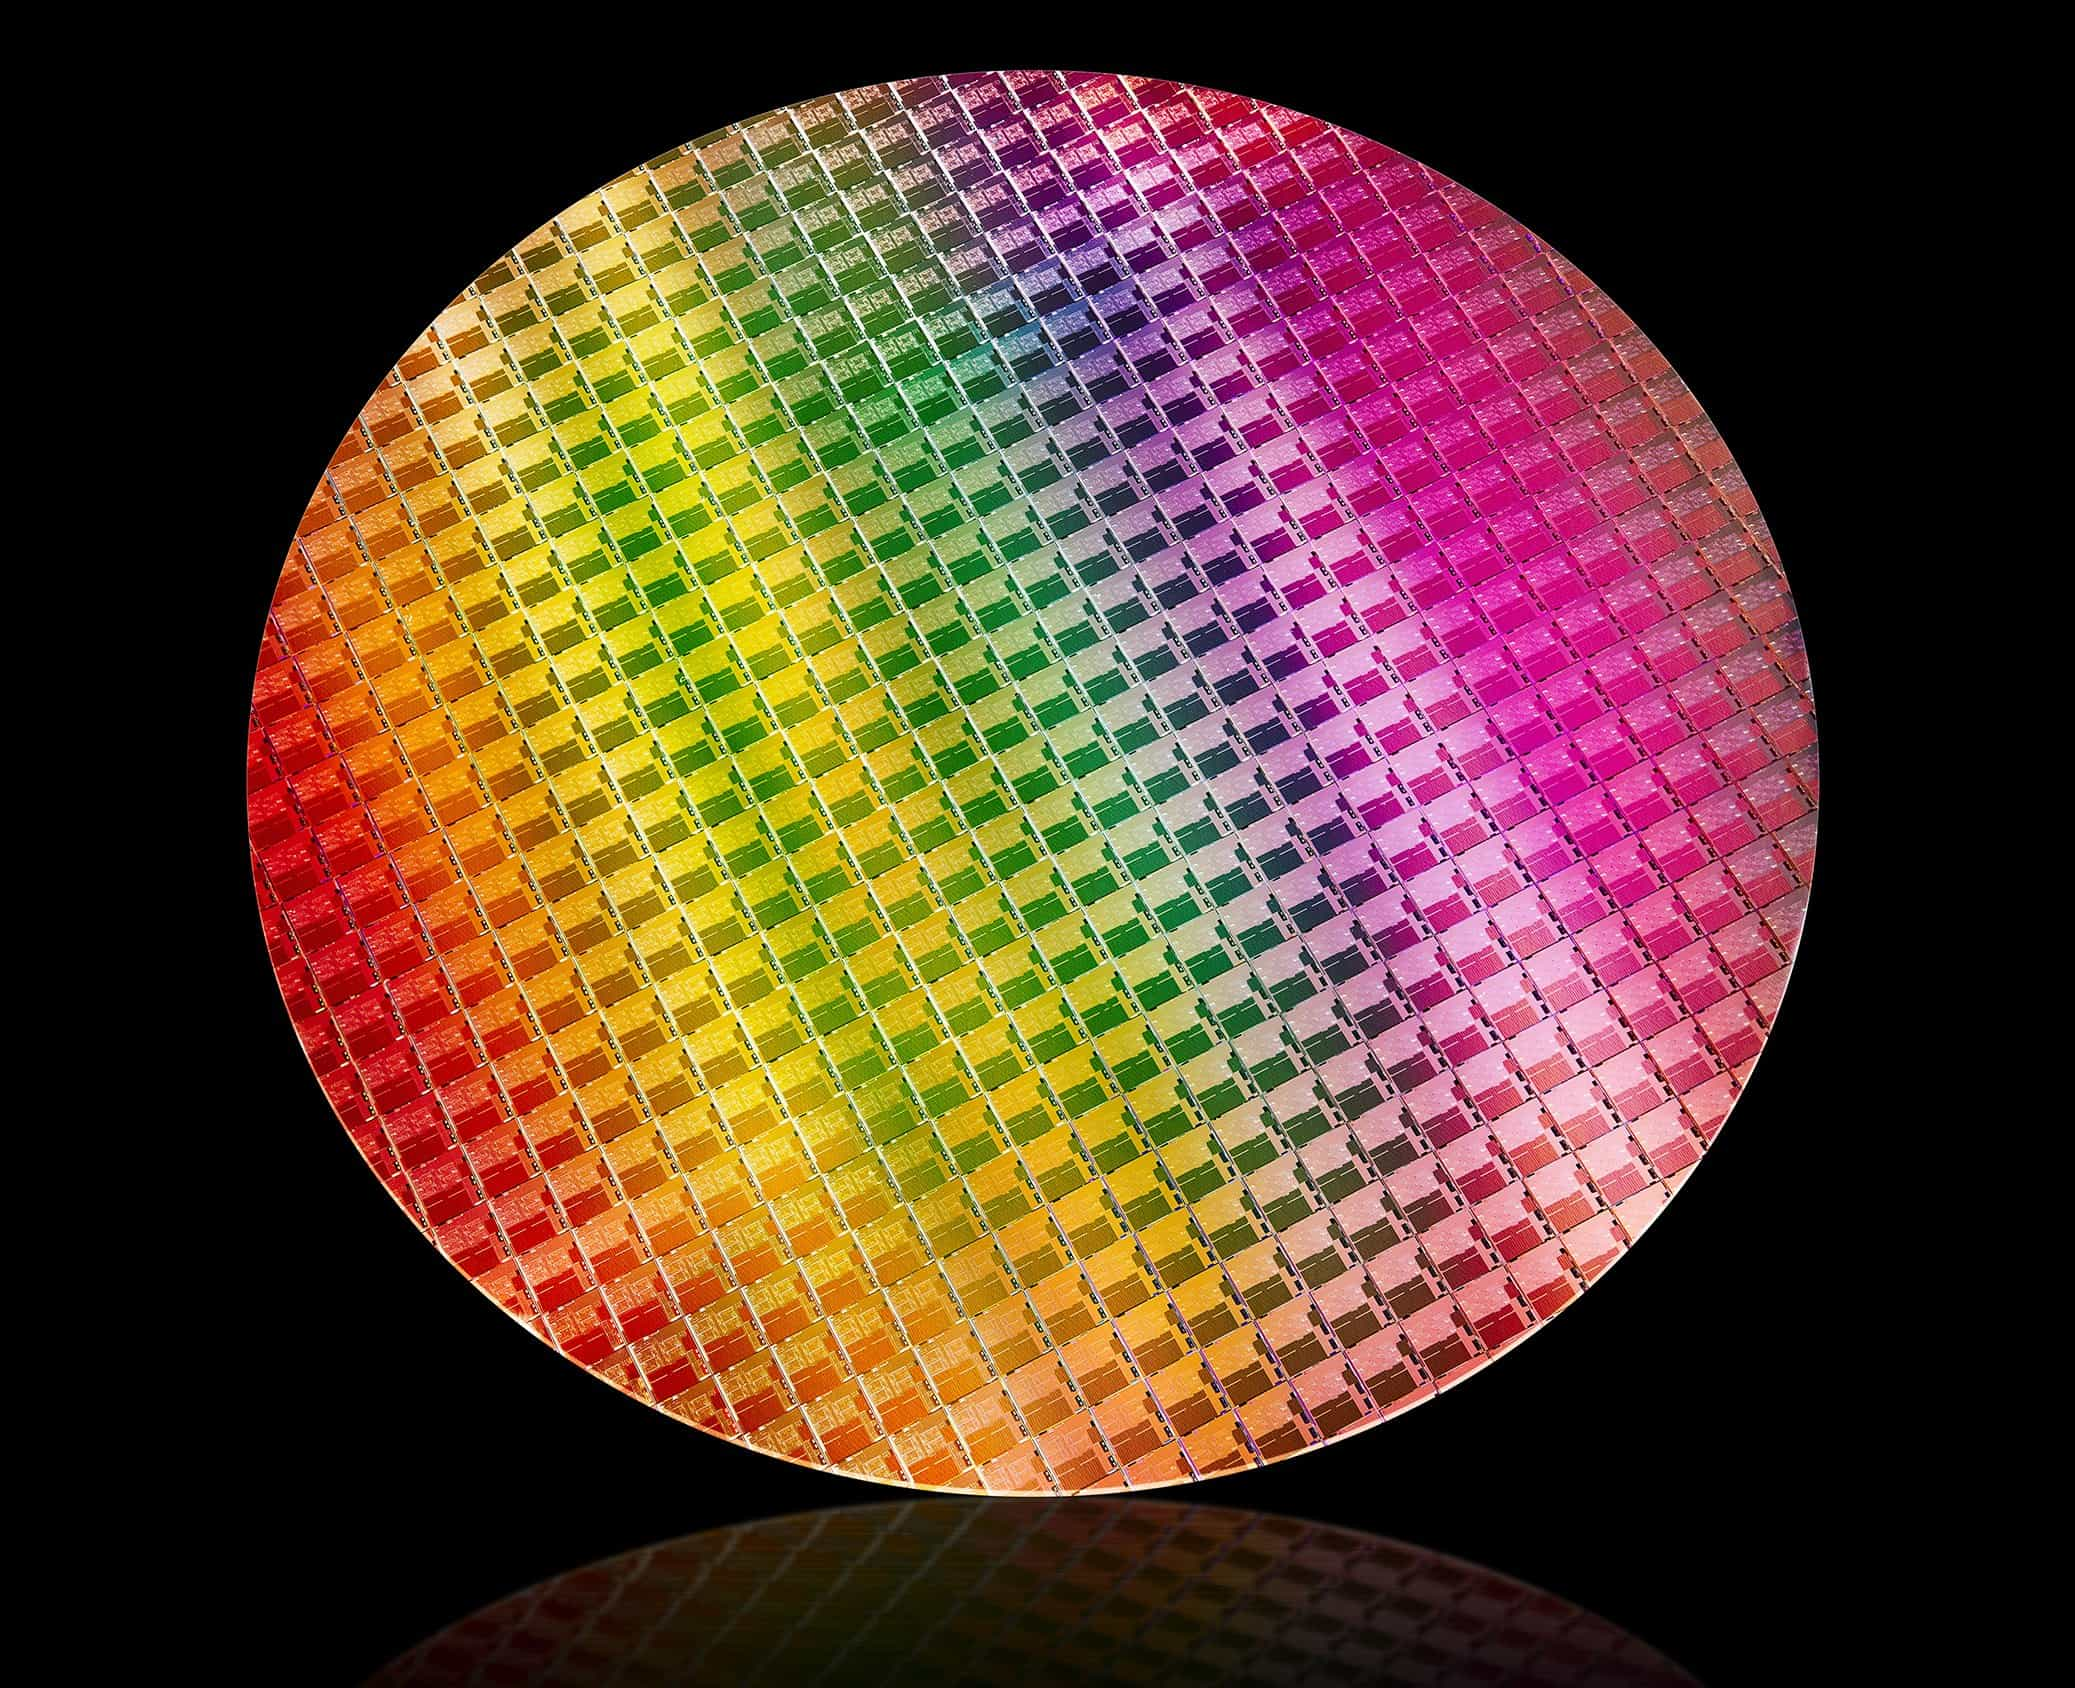 Procesor Intel 10 Generace Core Ice Lake Wafer